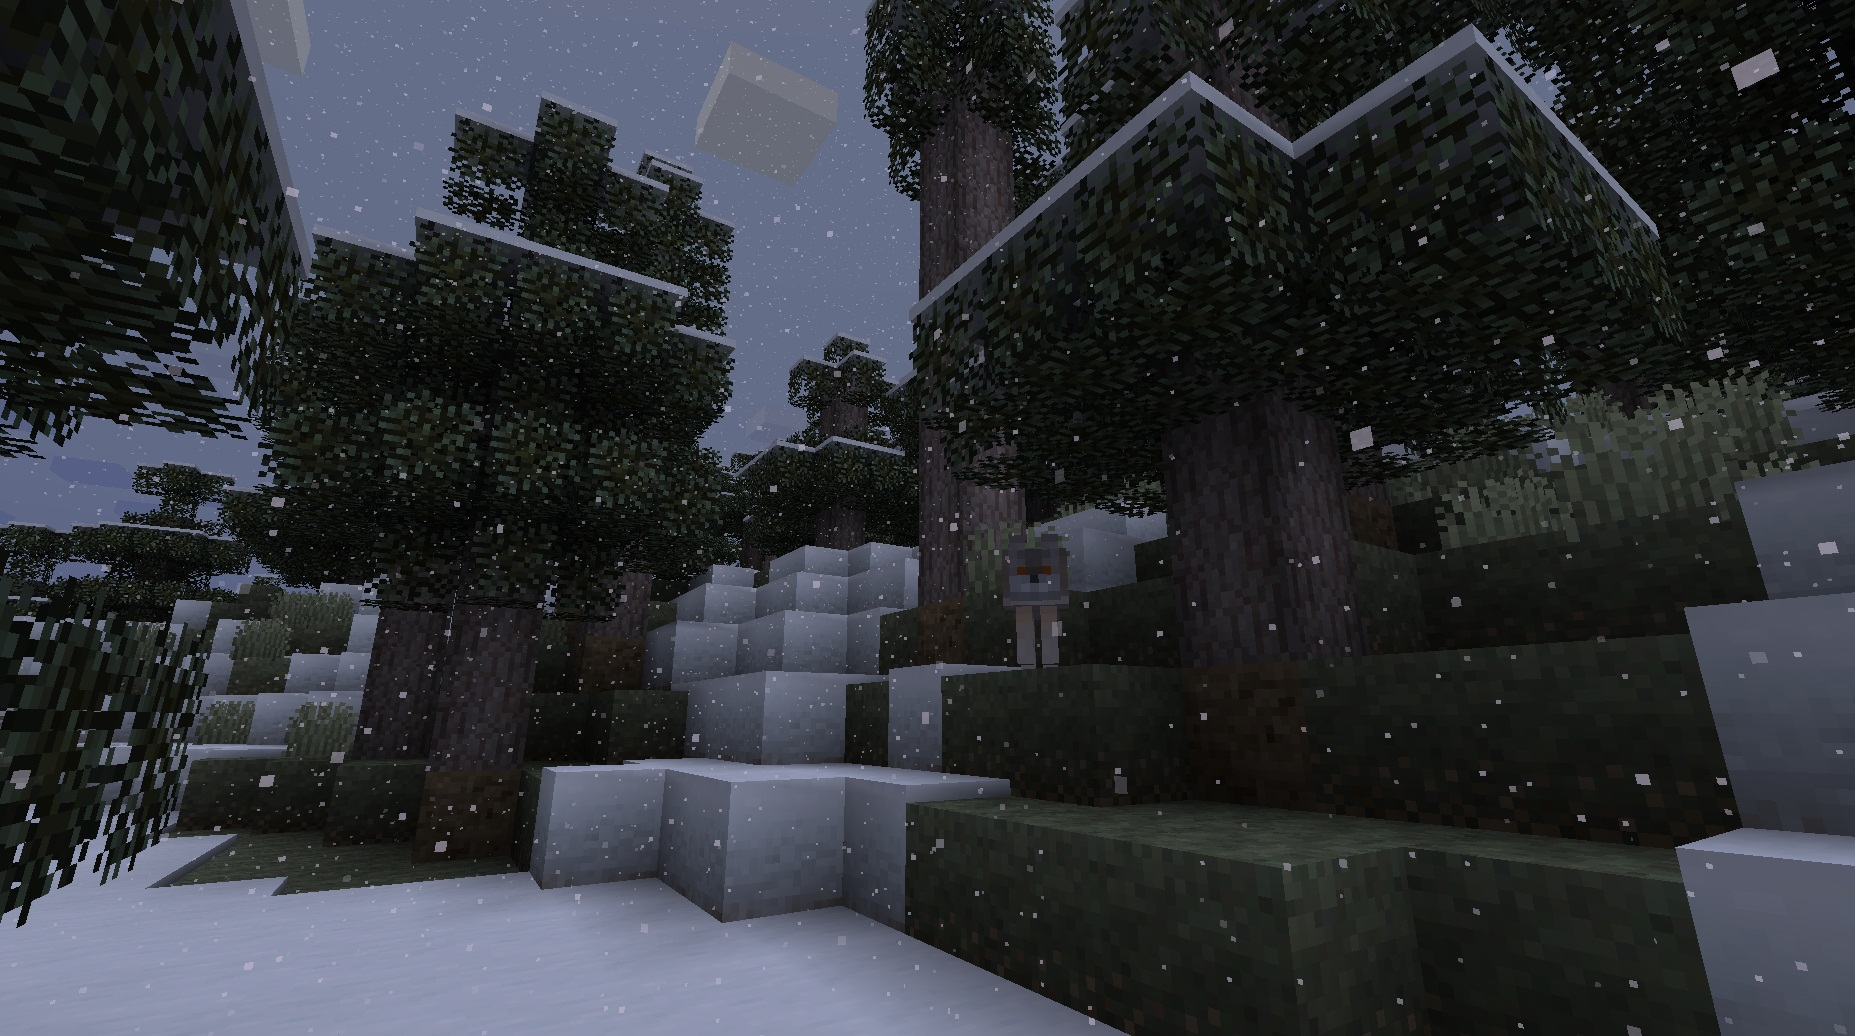 d229e  Pixel Reality Texture Pack 2 [1.10] [32x] Pixel Reality Texture Pack Download